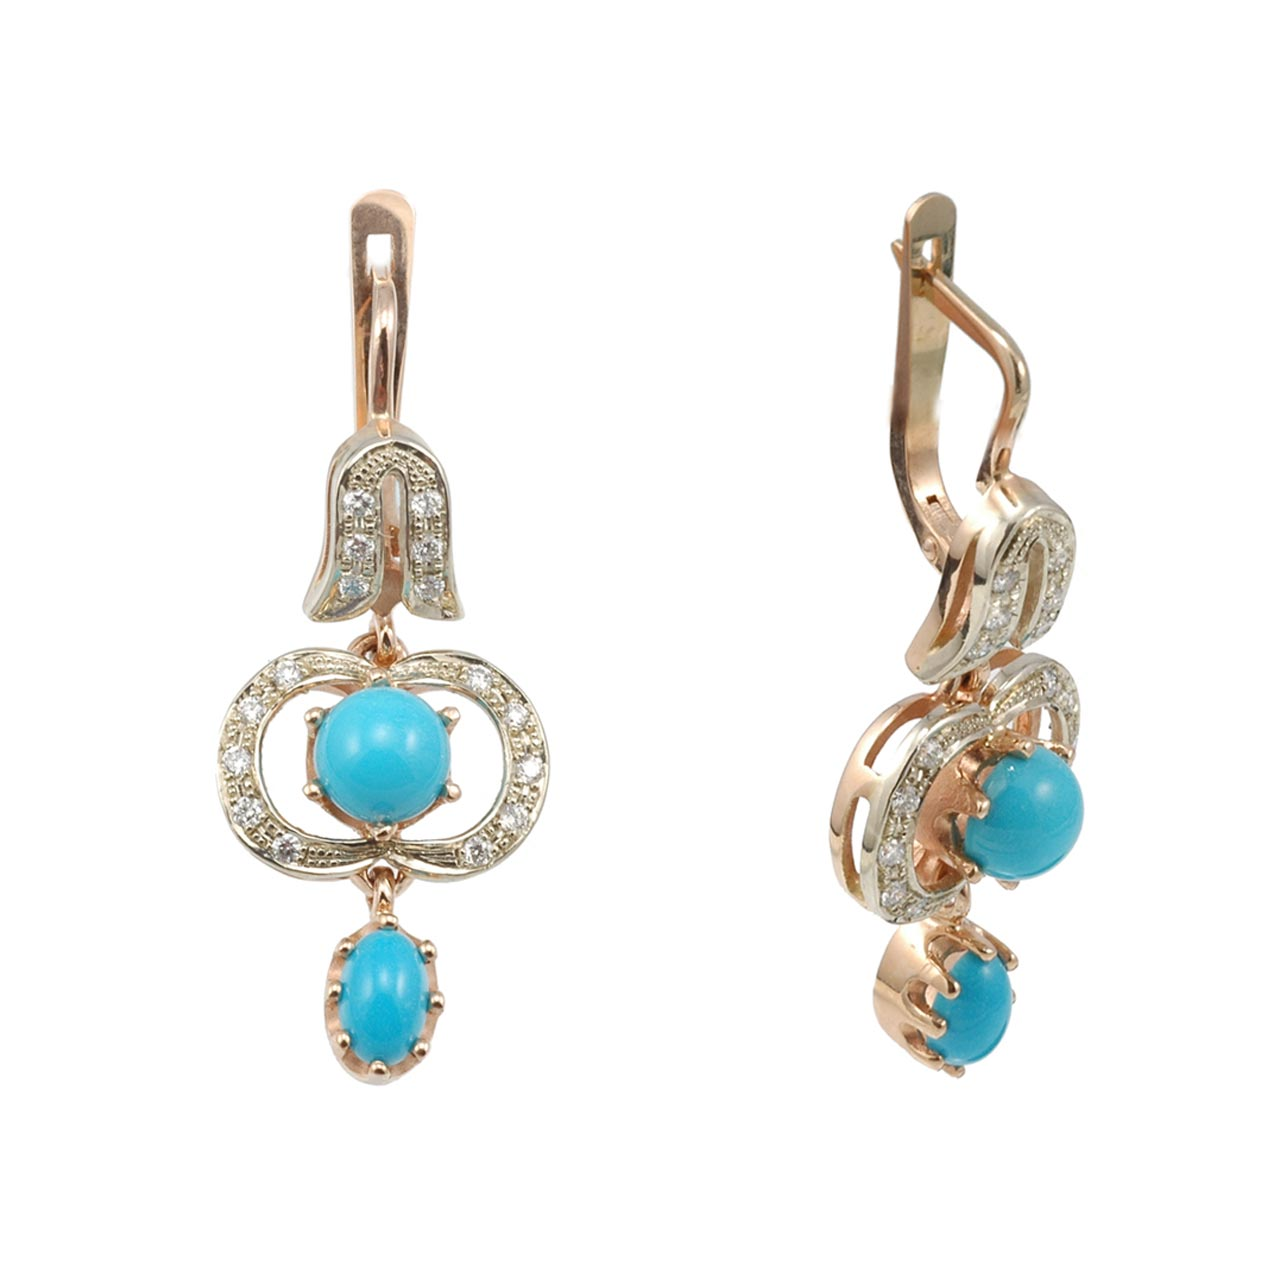 585° two-tone gold, turquoise and diamonds earrings